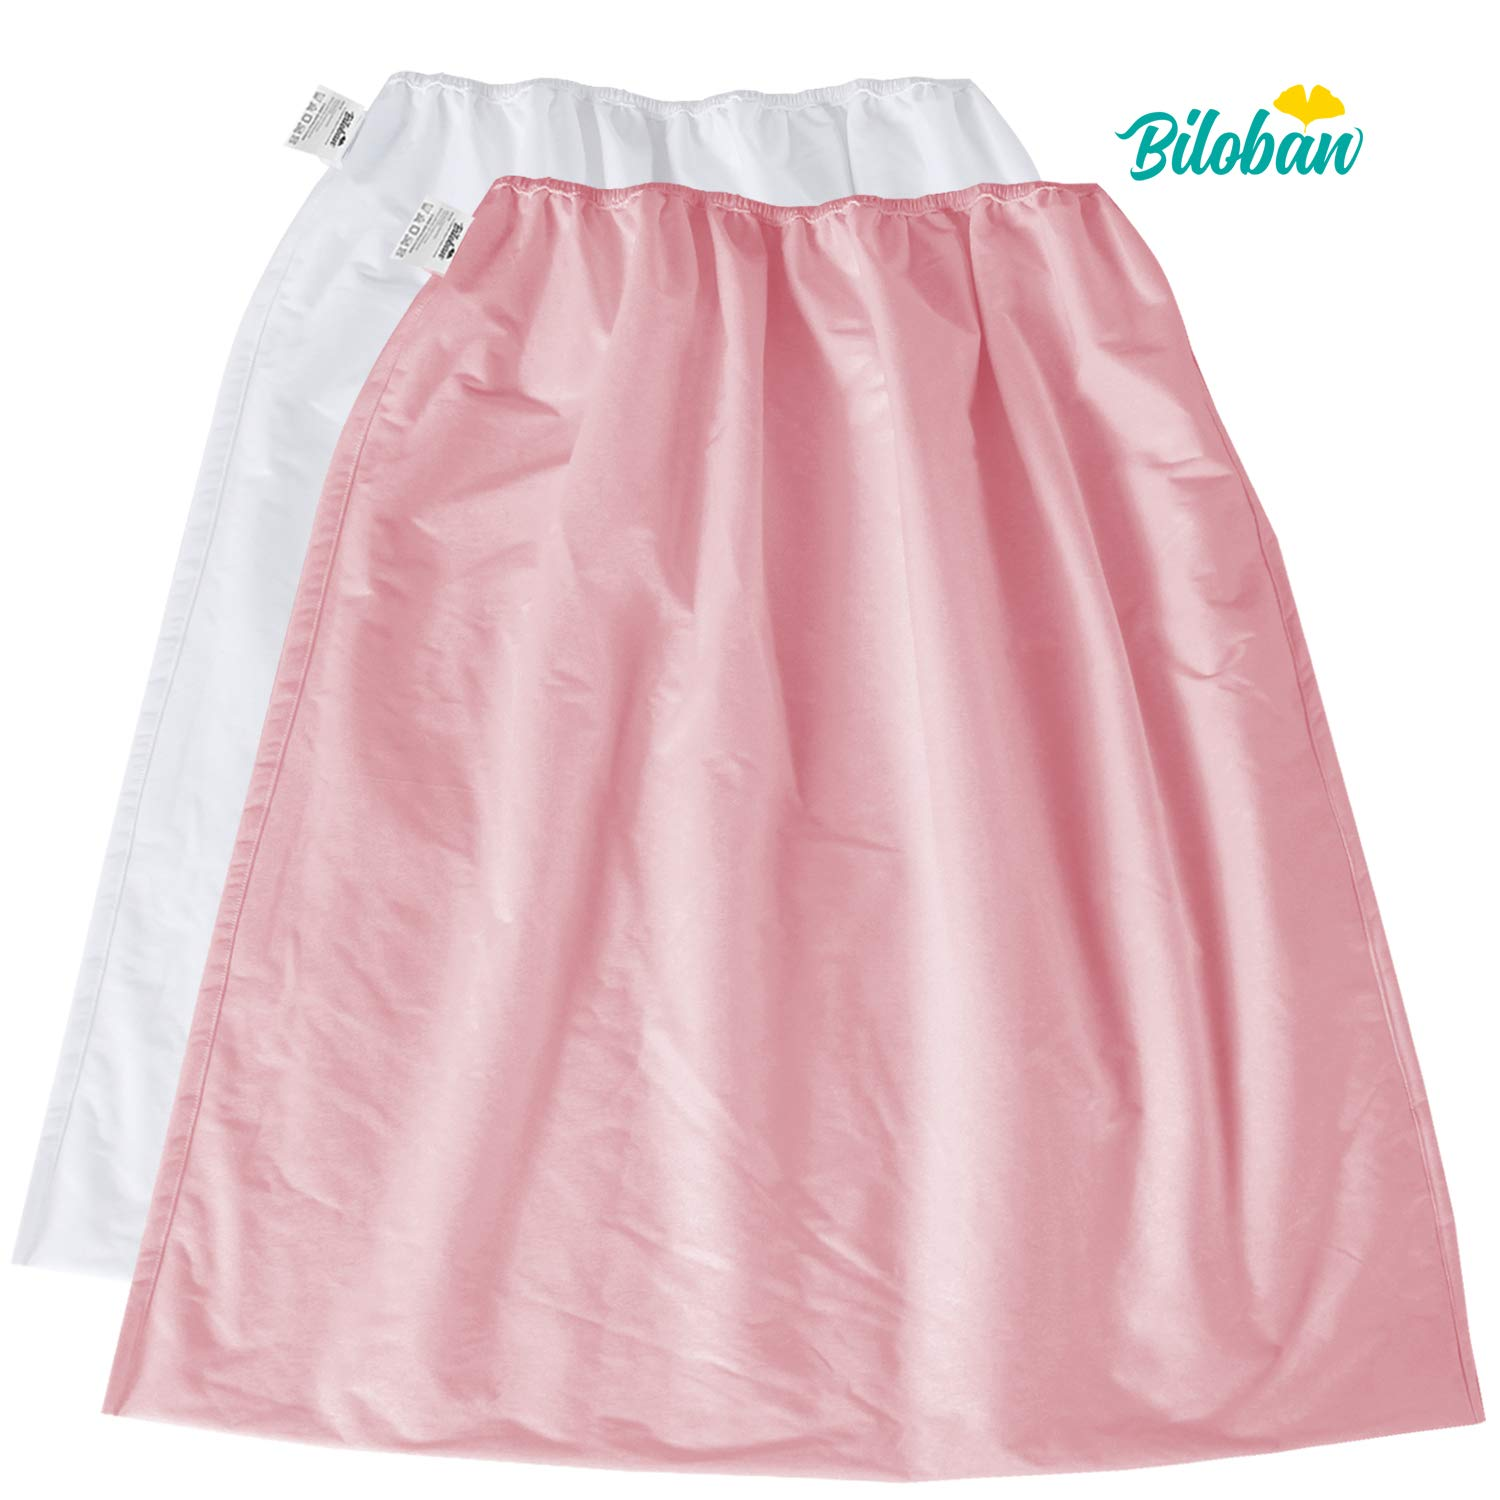 Diaper Pail Wet Bags 2 Pack, Water-Resistant Washable Diaper Pail Liner for Cloth Diaper, Laundry Garbage Trash Can Travel, White + Pink by Biloban